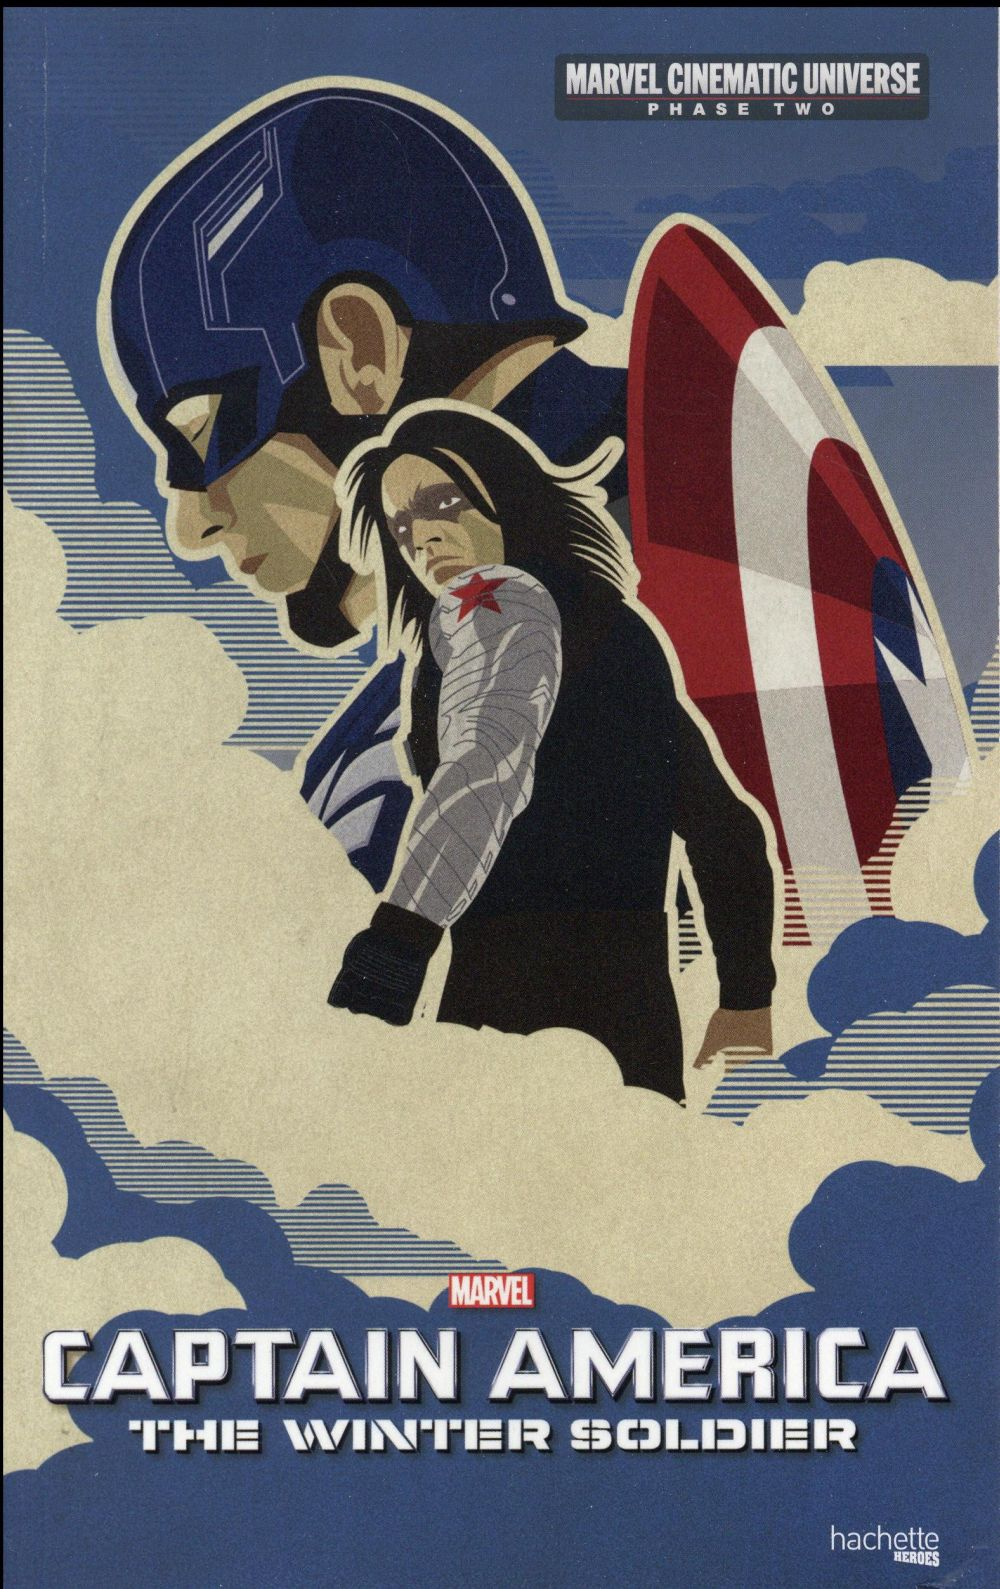 Marvel cinematic universe ; phase two ; captain America ; the winter soldier